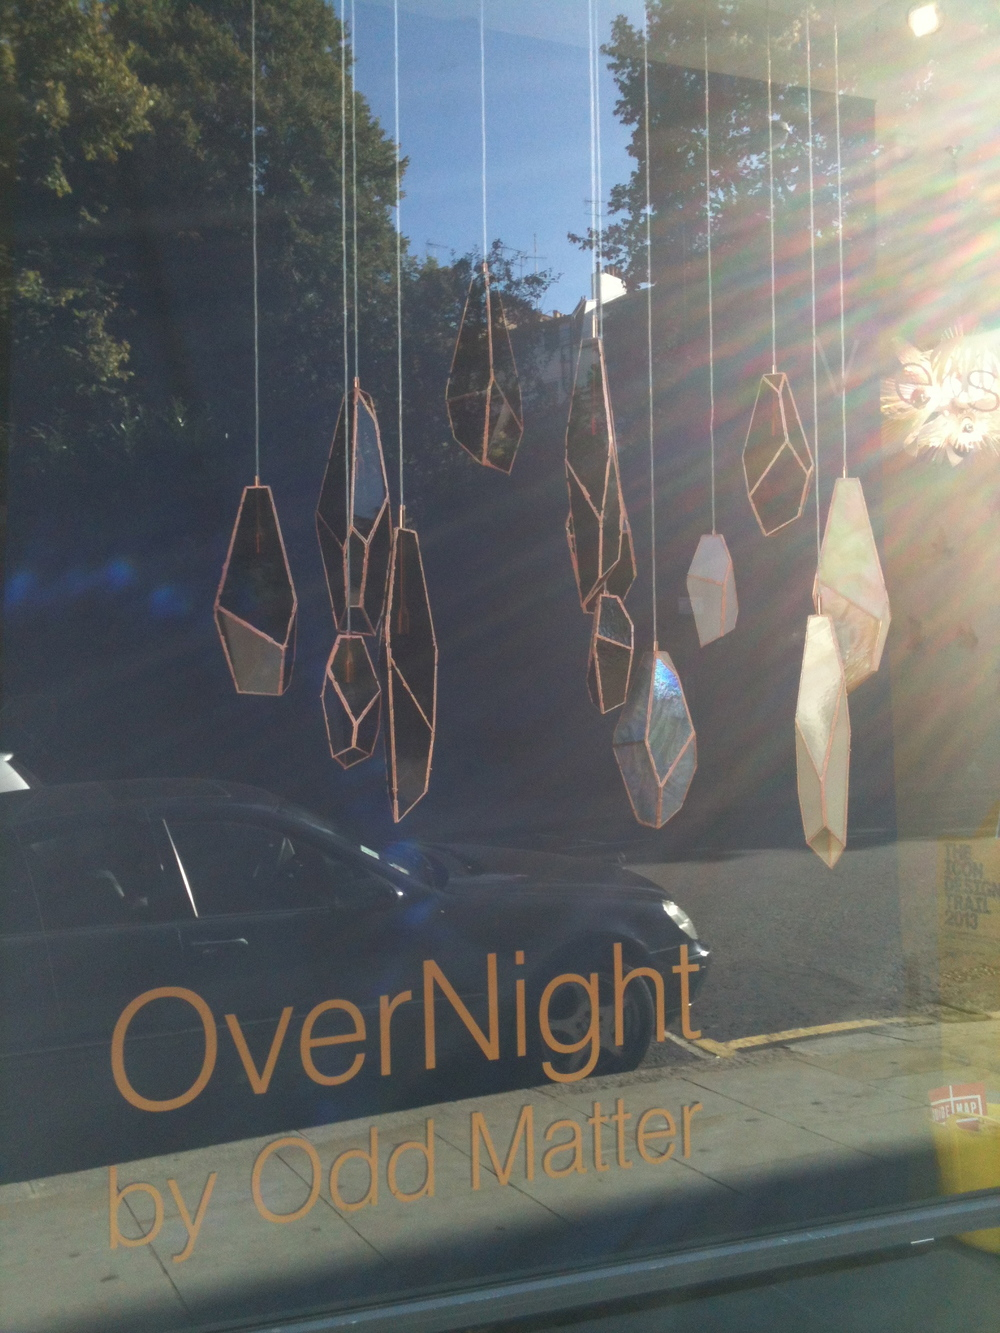 OverNight by Odd Matter Photo-London Design Journal